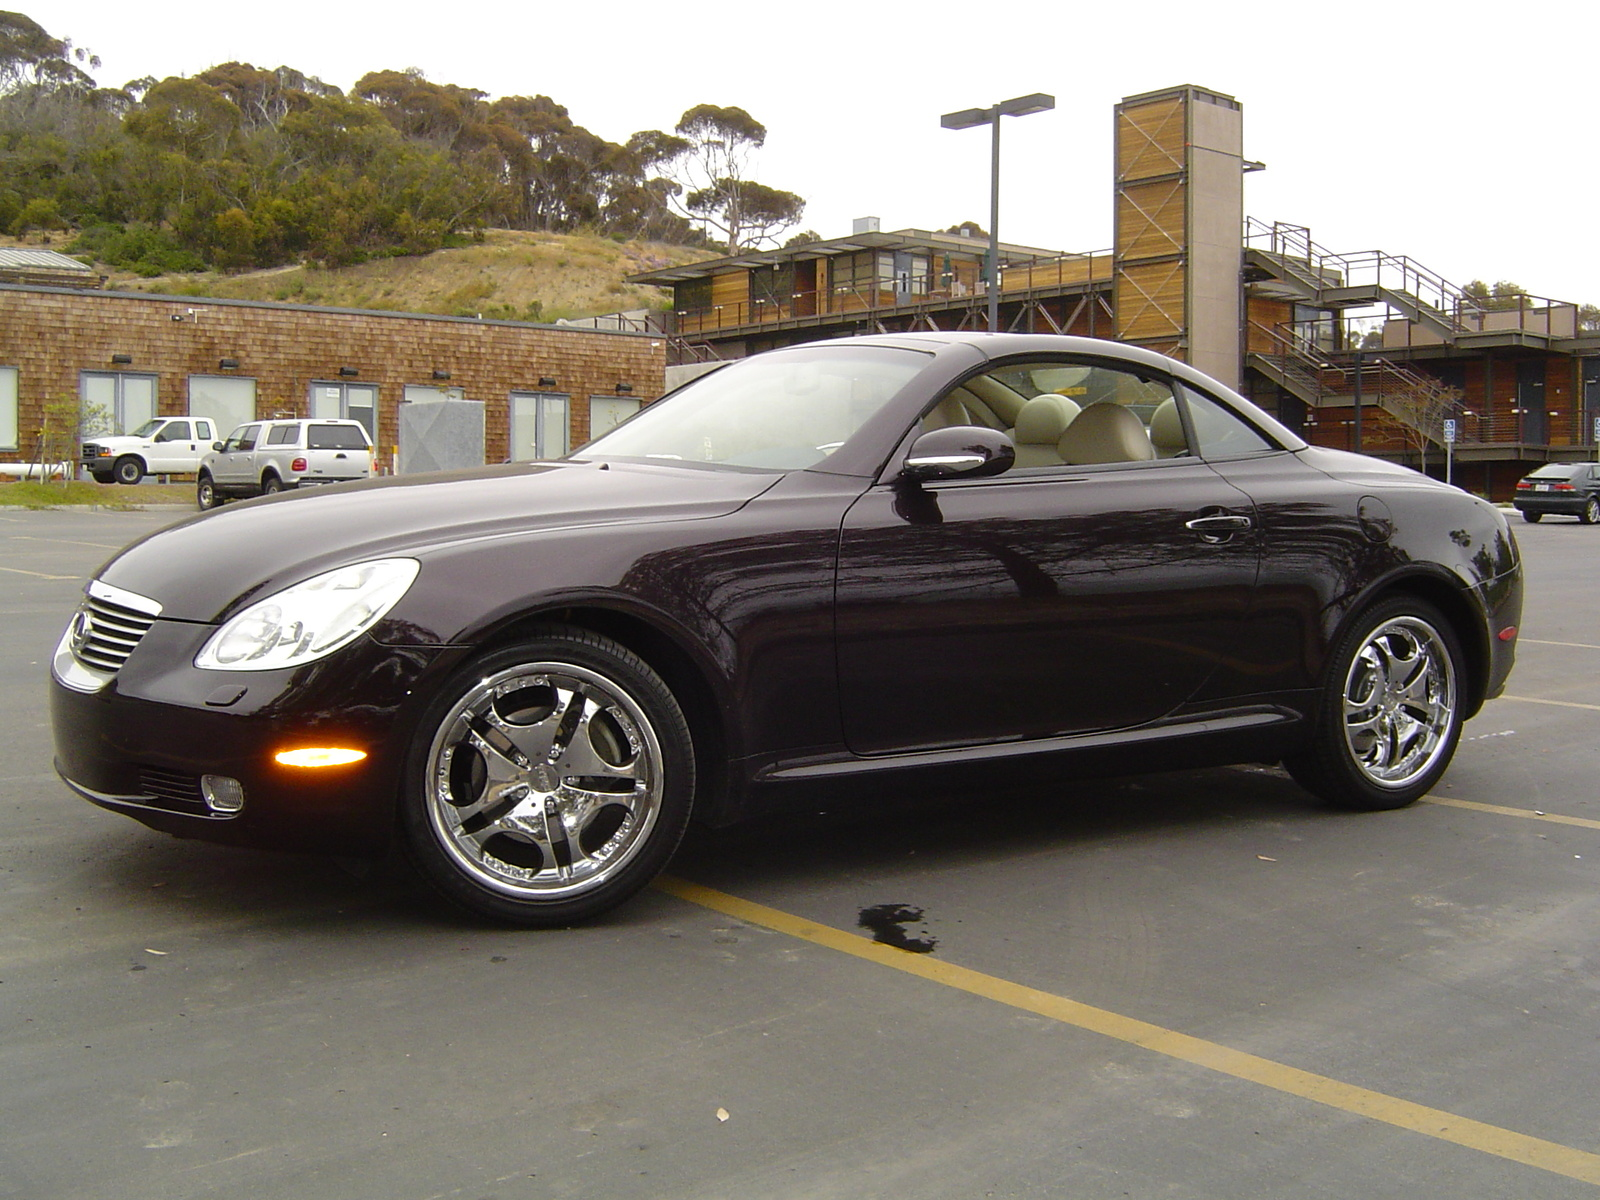 2002 Lexus SC 430 Roadster picture